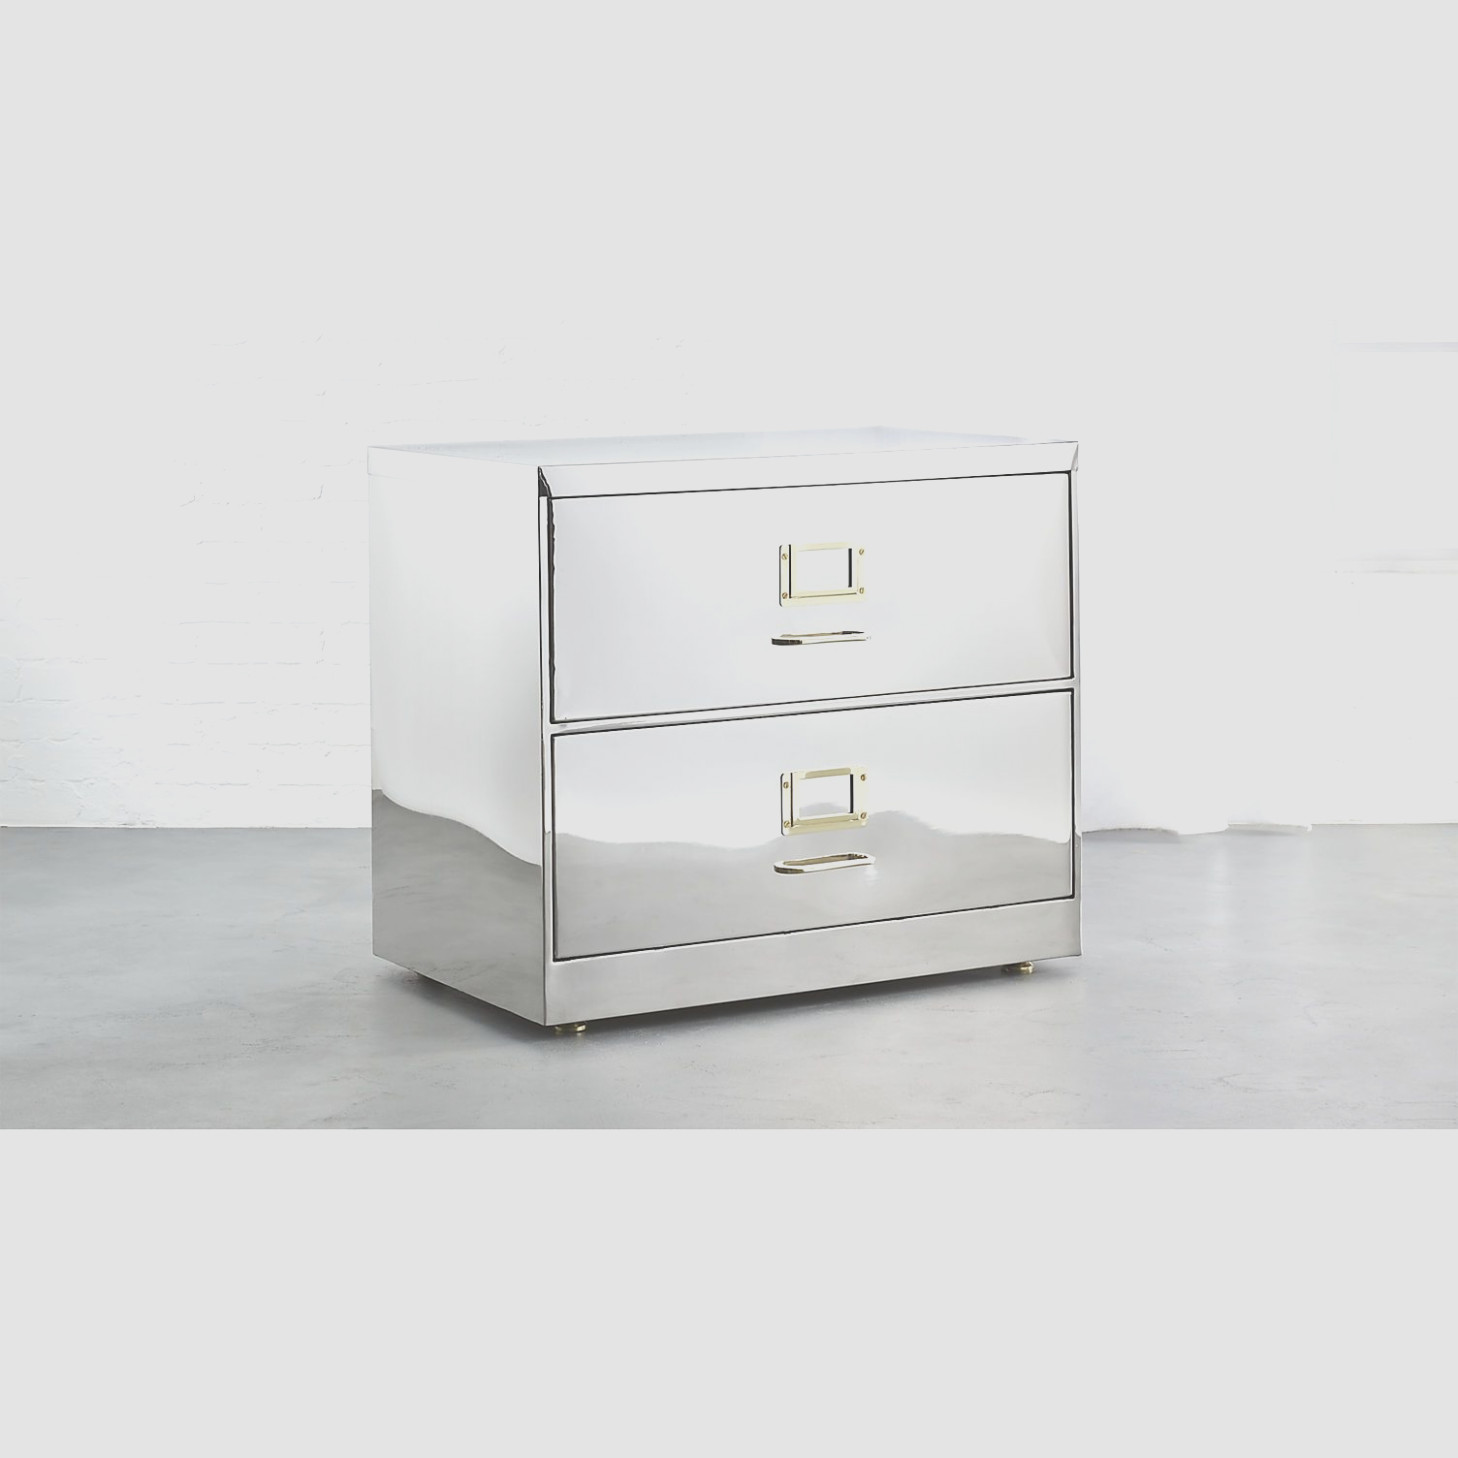 Cb1 Stainless Steel File Cabinet